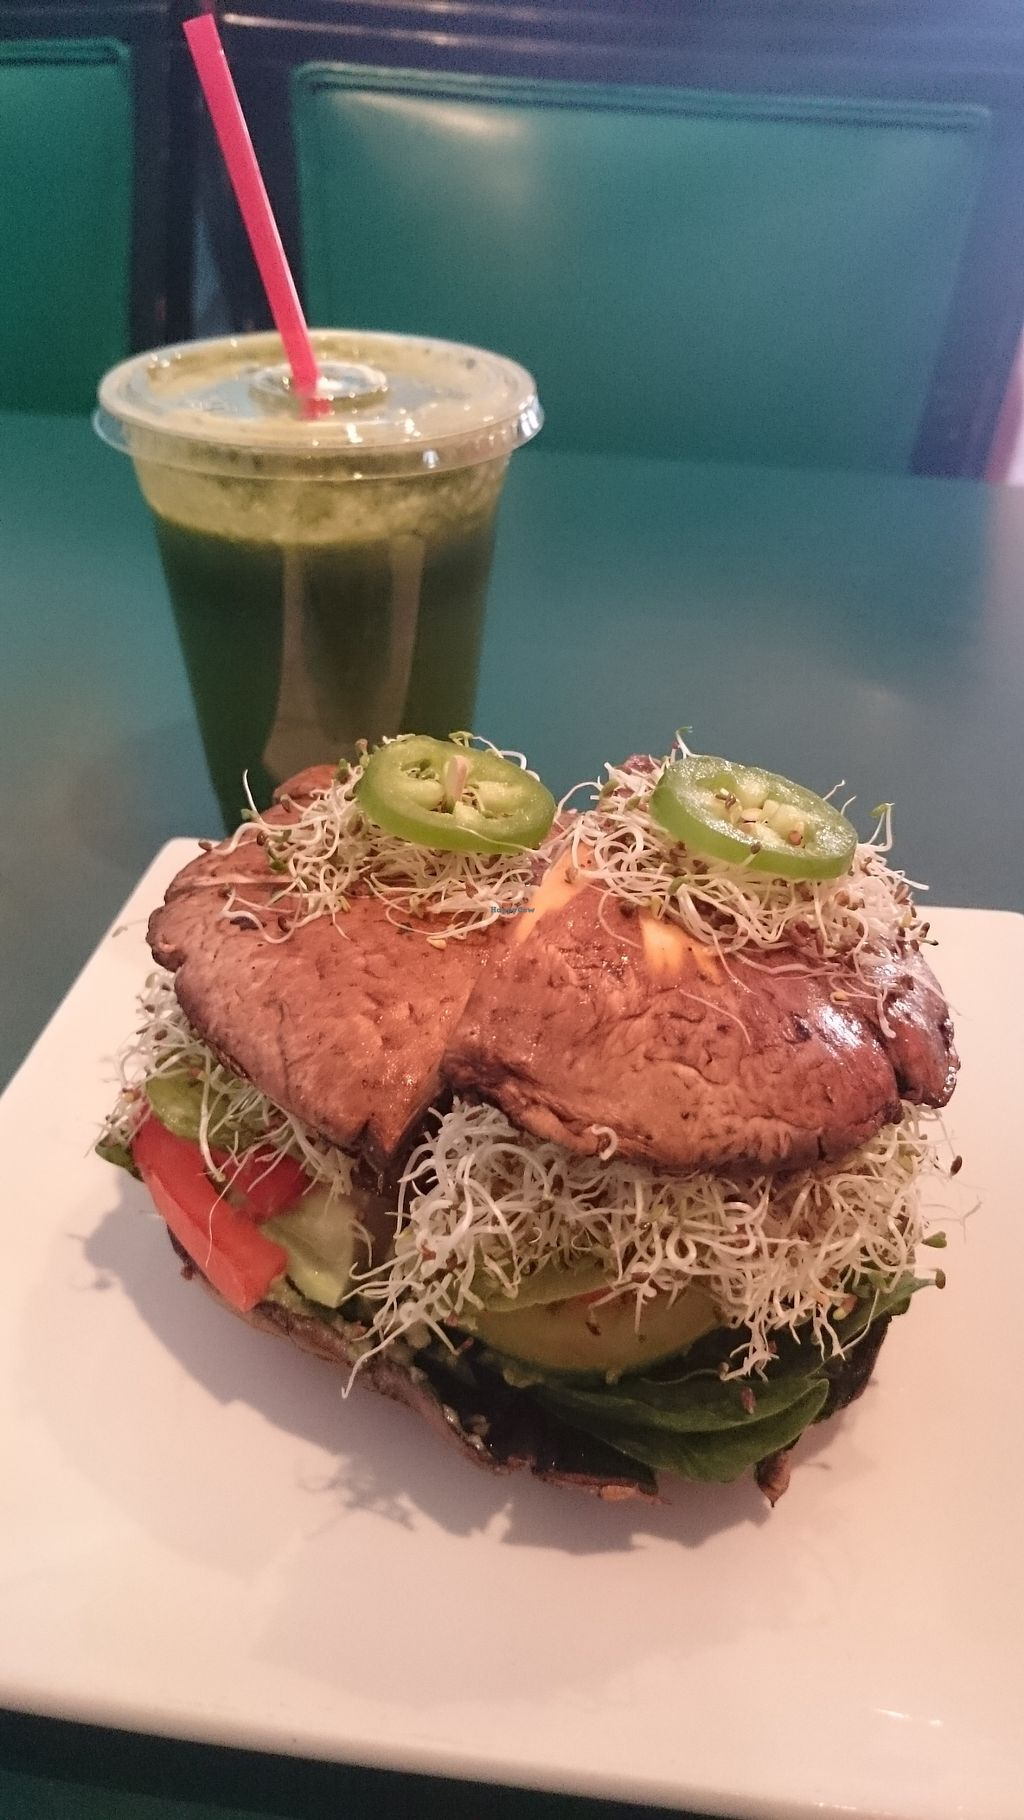 "Photo of Rainbow's End  by <a href=""/members/profile/chb-pbfp"">chb-pbfp</a> <br/>Raw portobello burger <br/> August 26, 2017  - <a href='/contact/abuse/image/37989/297351'>Report</a>"